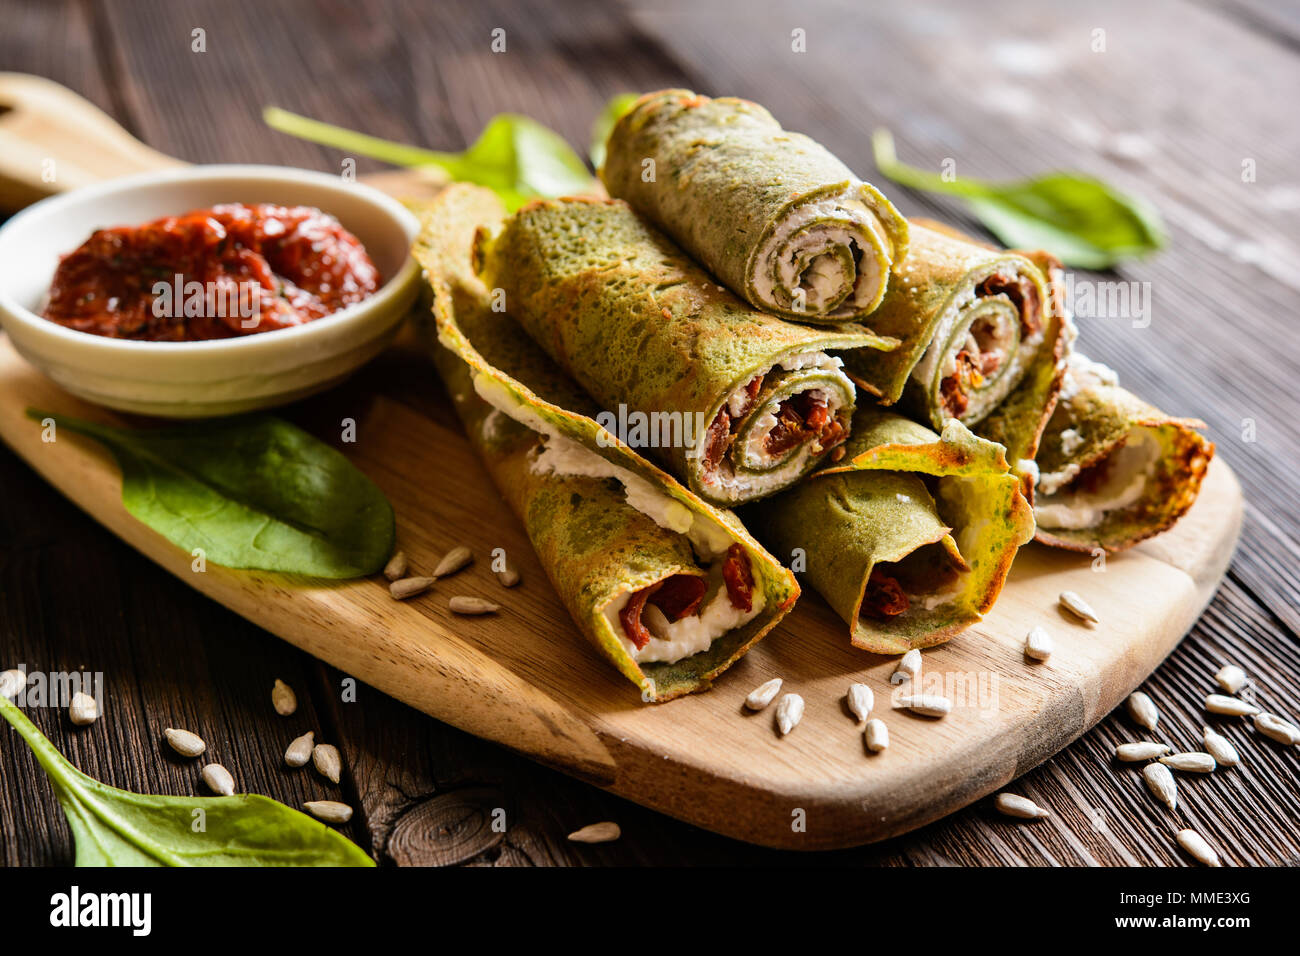 Savory spinach pancakes stuffed with Feta cheese, curd, sun dried tomato and sunflower seeds - Stock Image